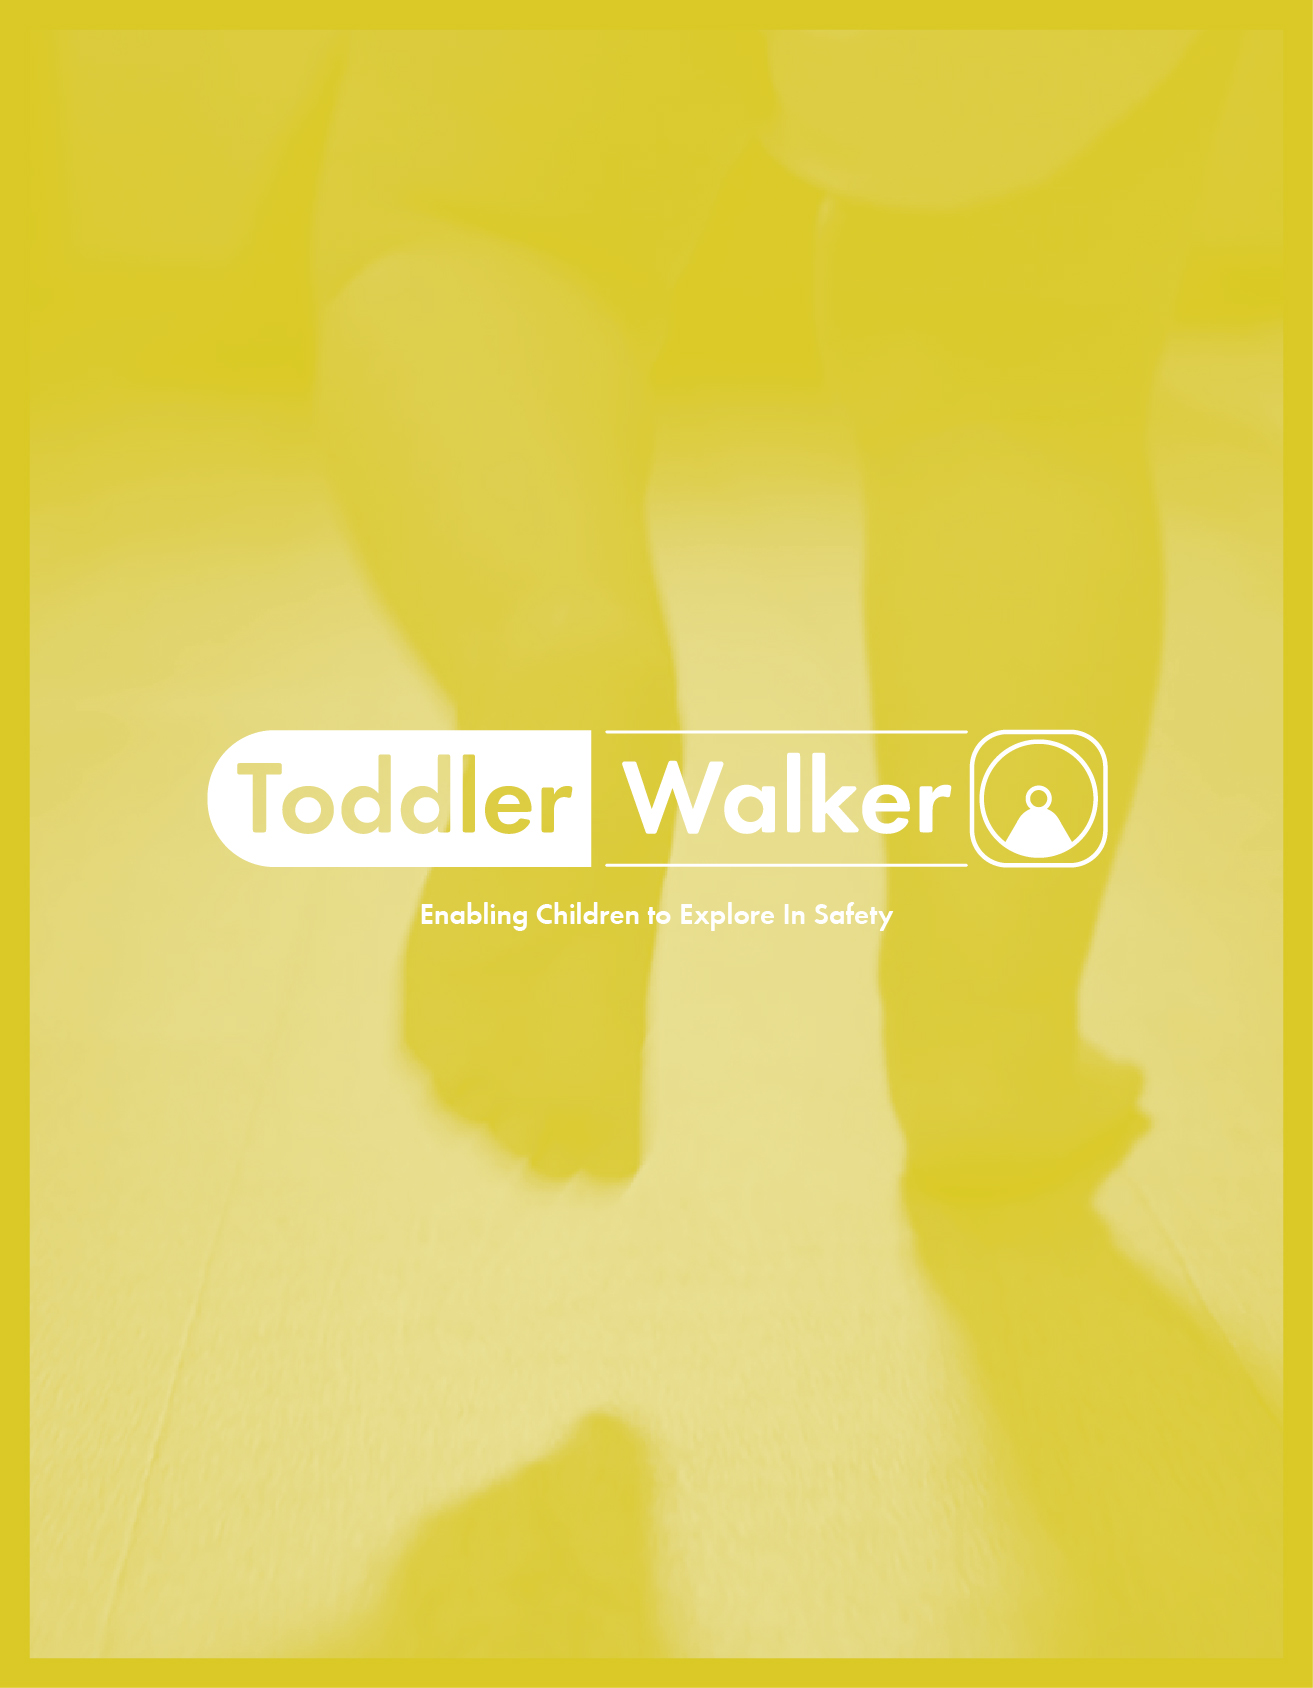 Toddler Walker Final Presentation - Image 1-01-01